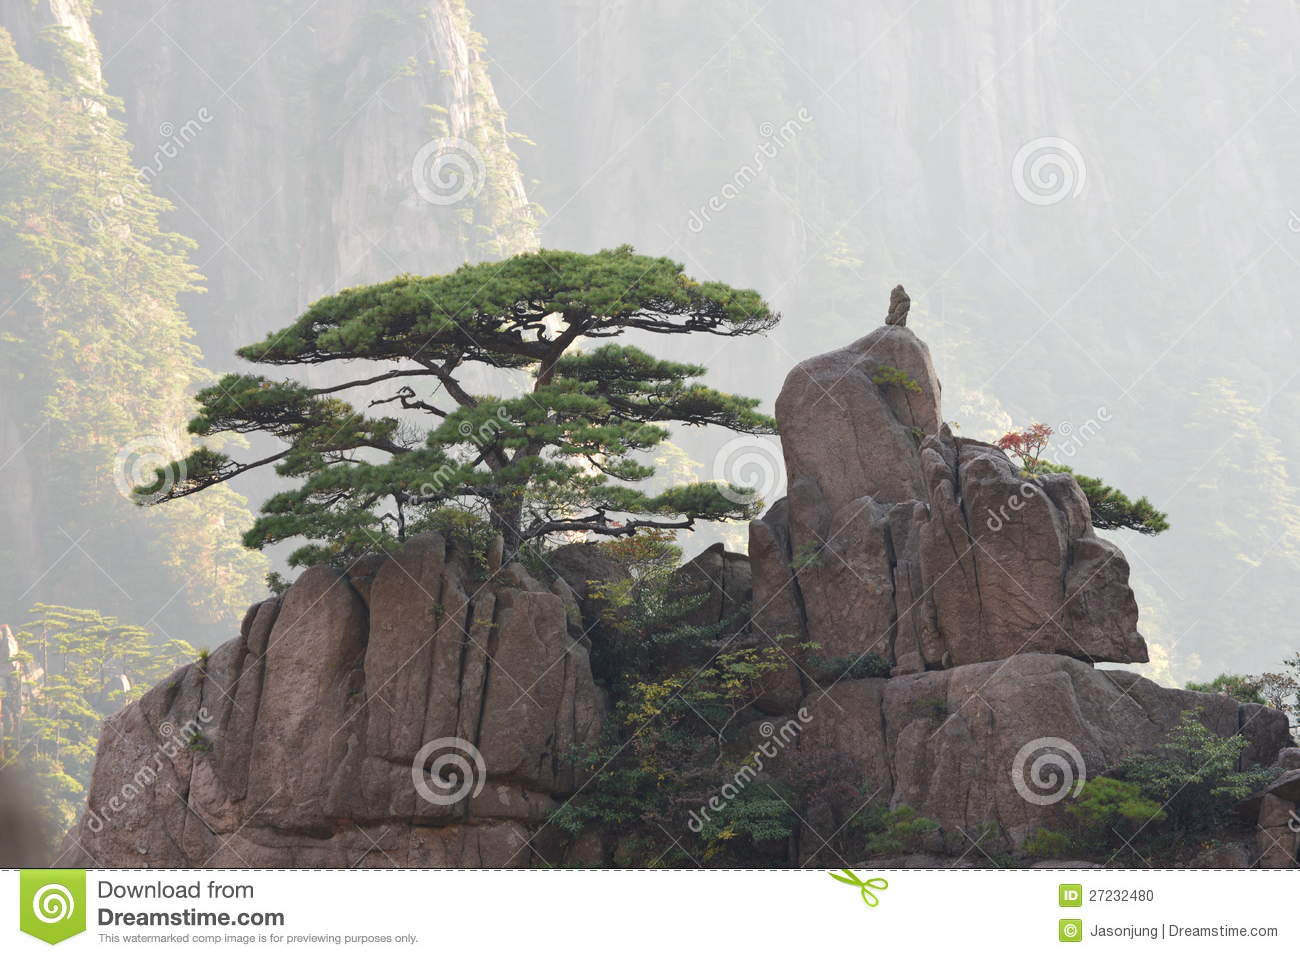 Soilmud Download likewise Fig Html besides Highrisenight also Fig Html in addition Pine Tree Top Mountain. on yellow objects